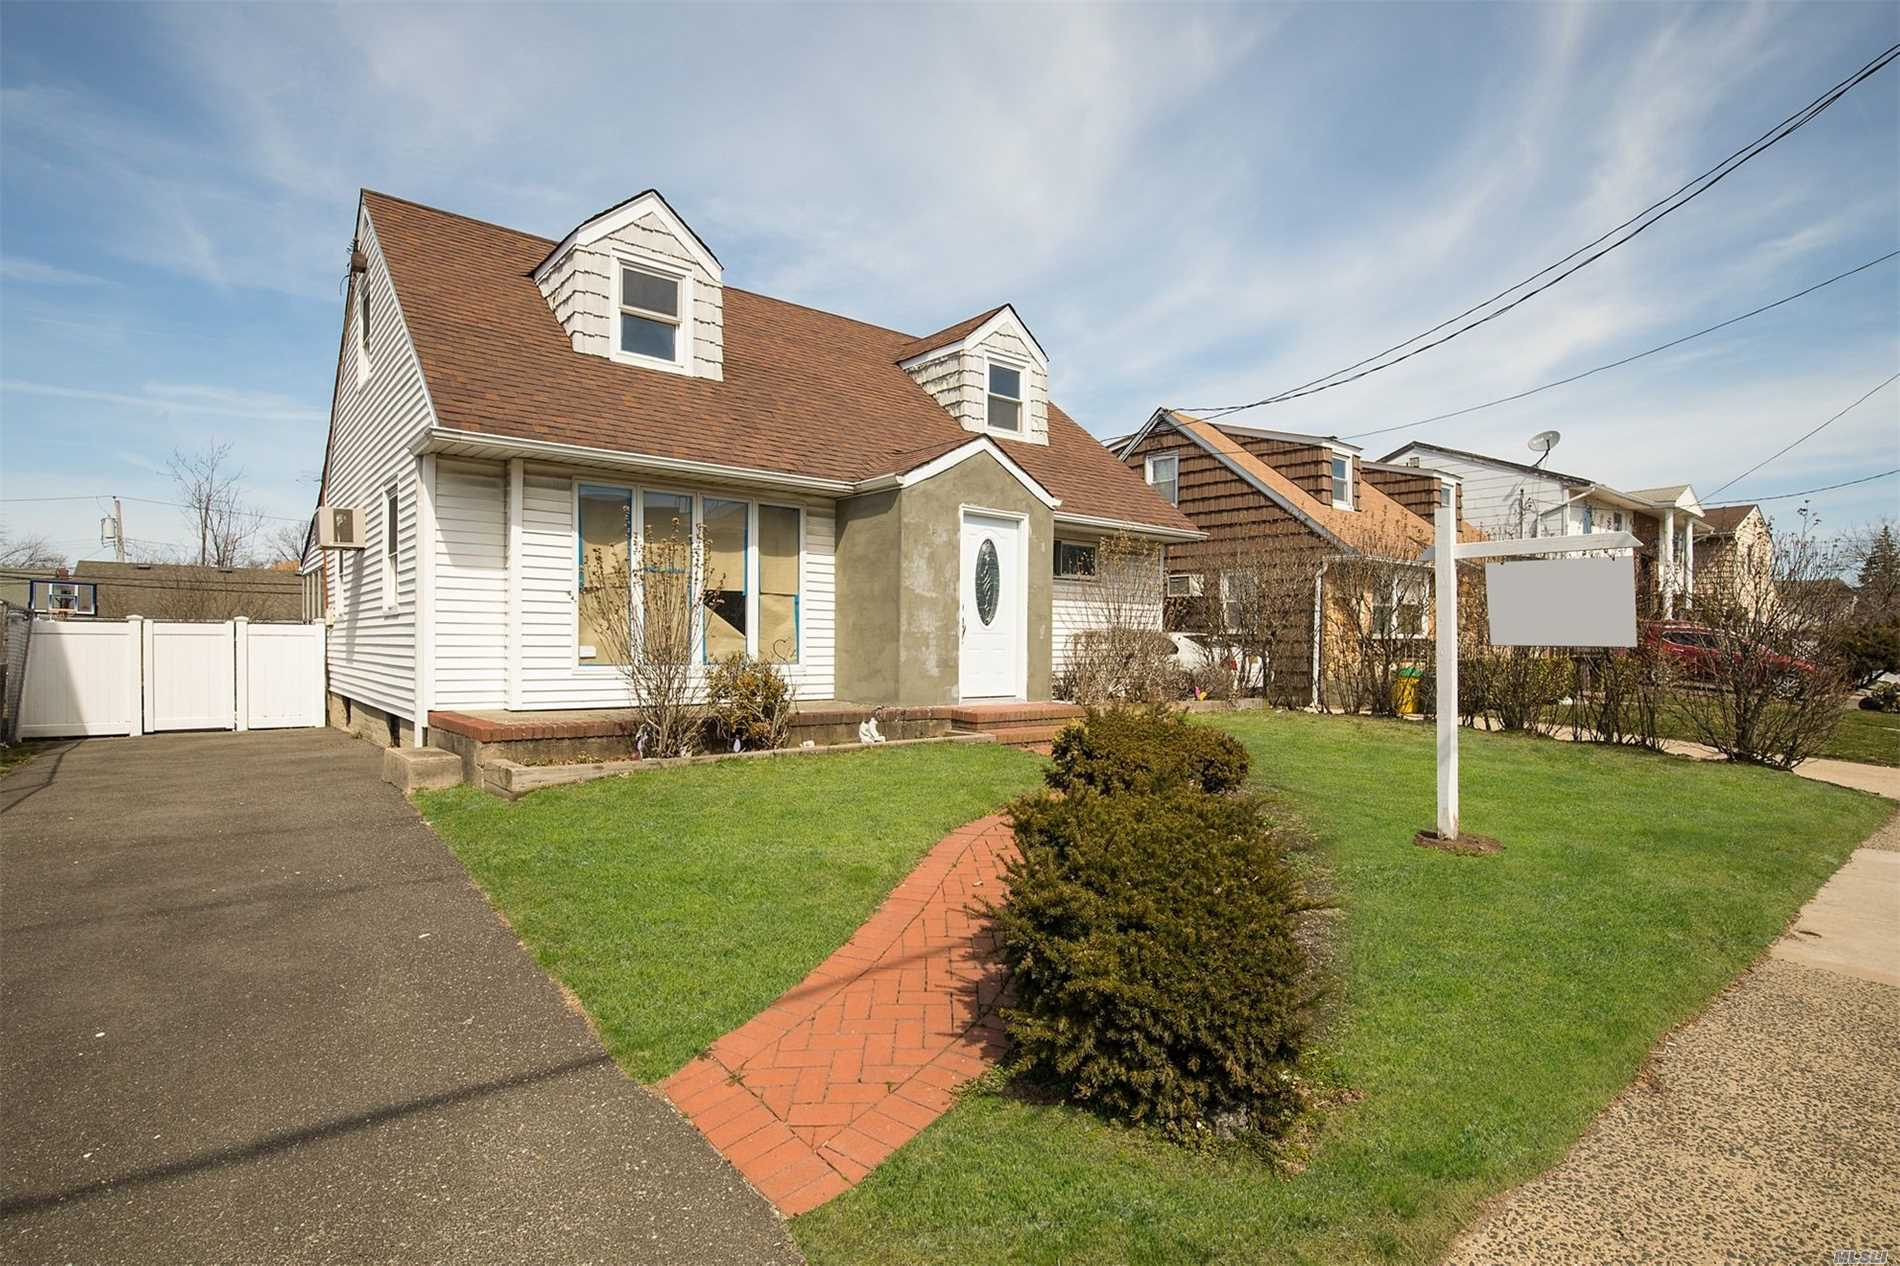 Renovated 3 BR Cape. New Appliances and Cabinets. Floors Refinished. New Bathroom Fixtures.